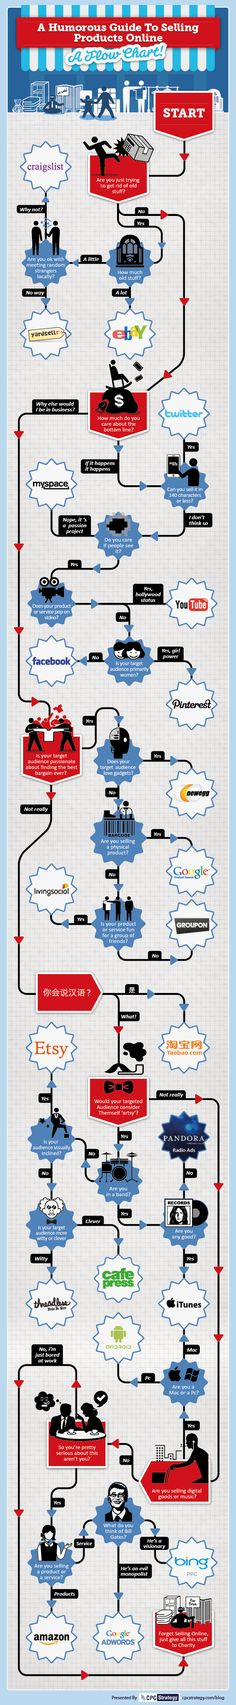 An amusing look at an infographic- sell-products-online-infographic